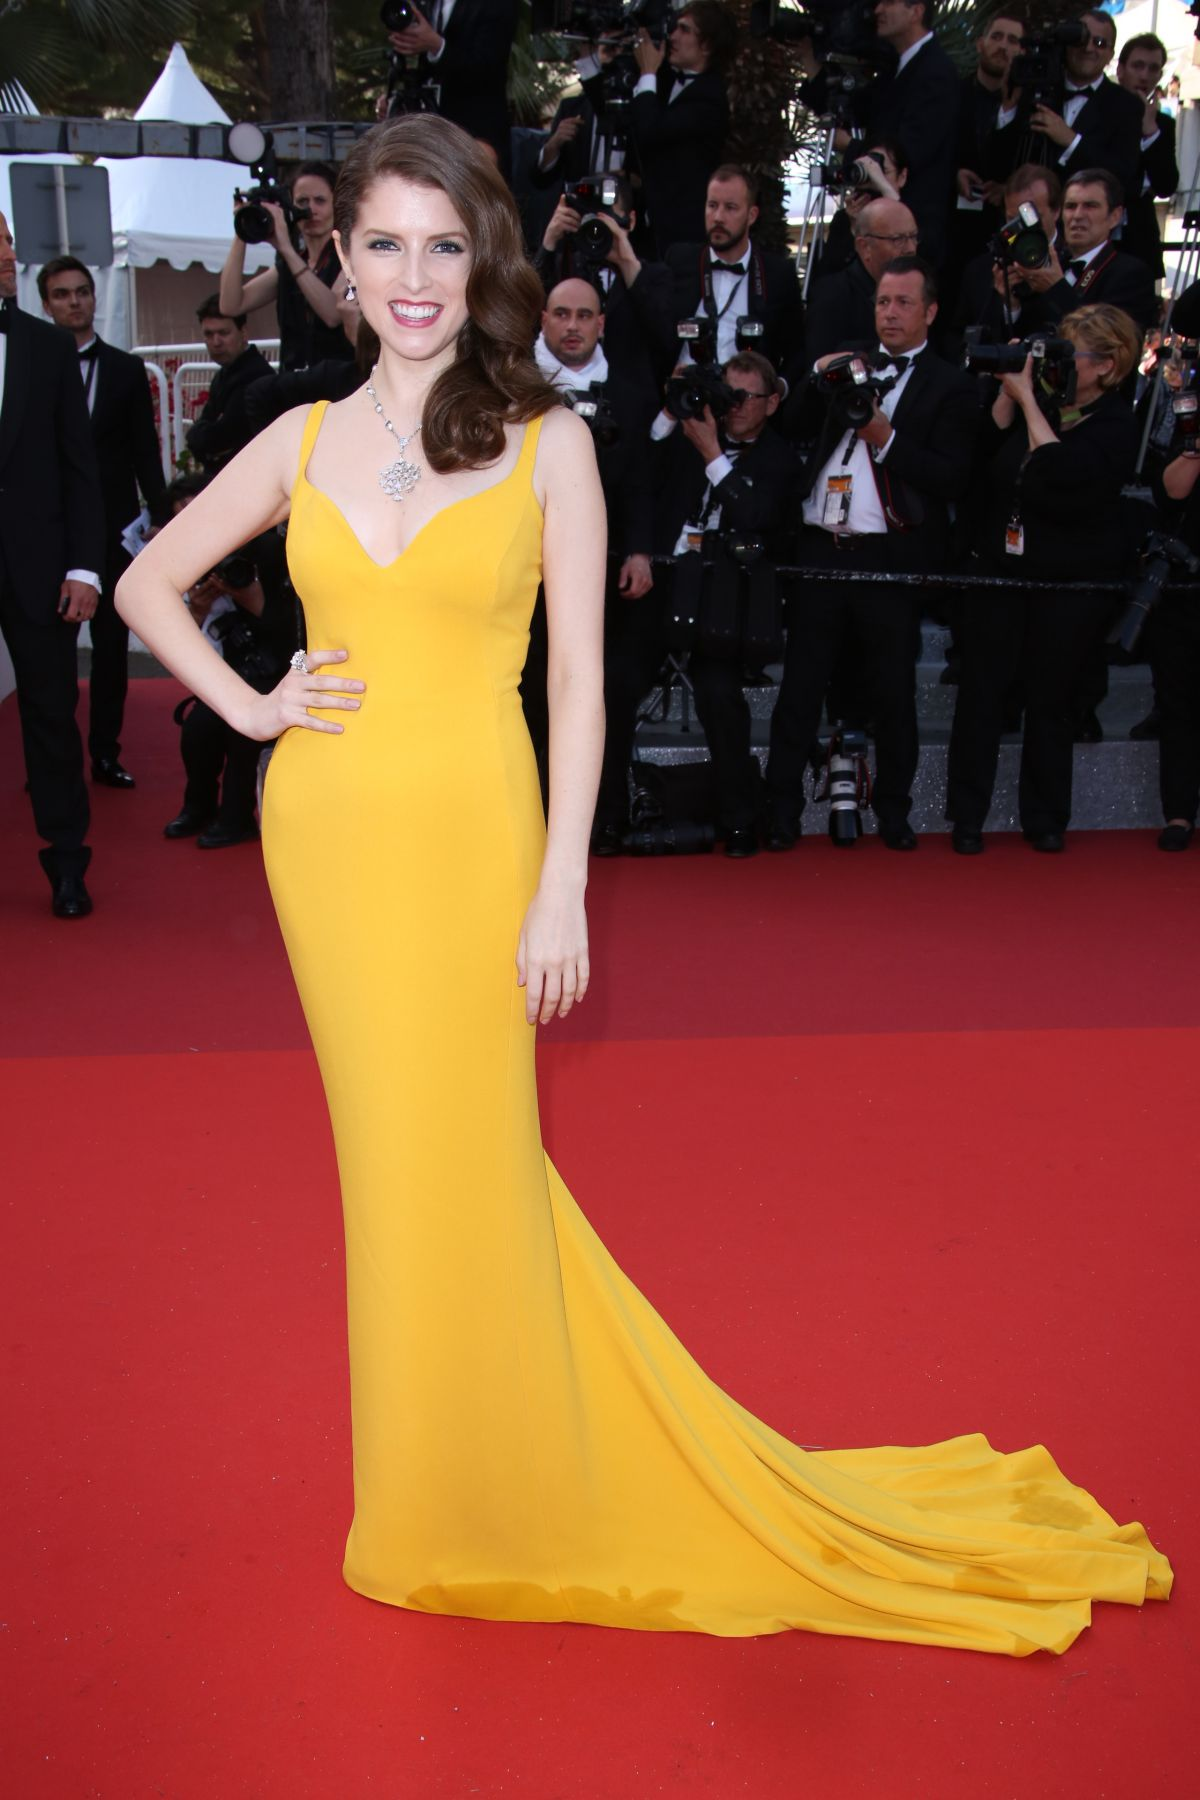 anna-kendrick-at-cafe-society-premiere-and-69th-cannes-film-festival-opening-05-11-2016_1